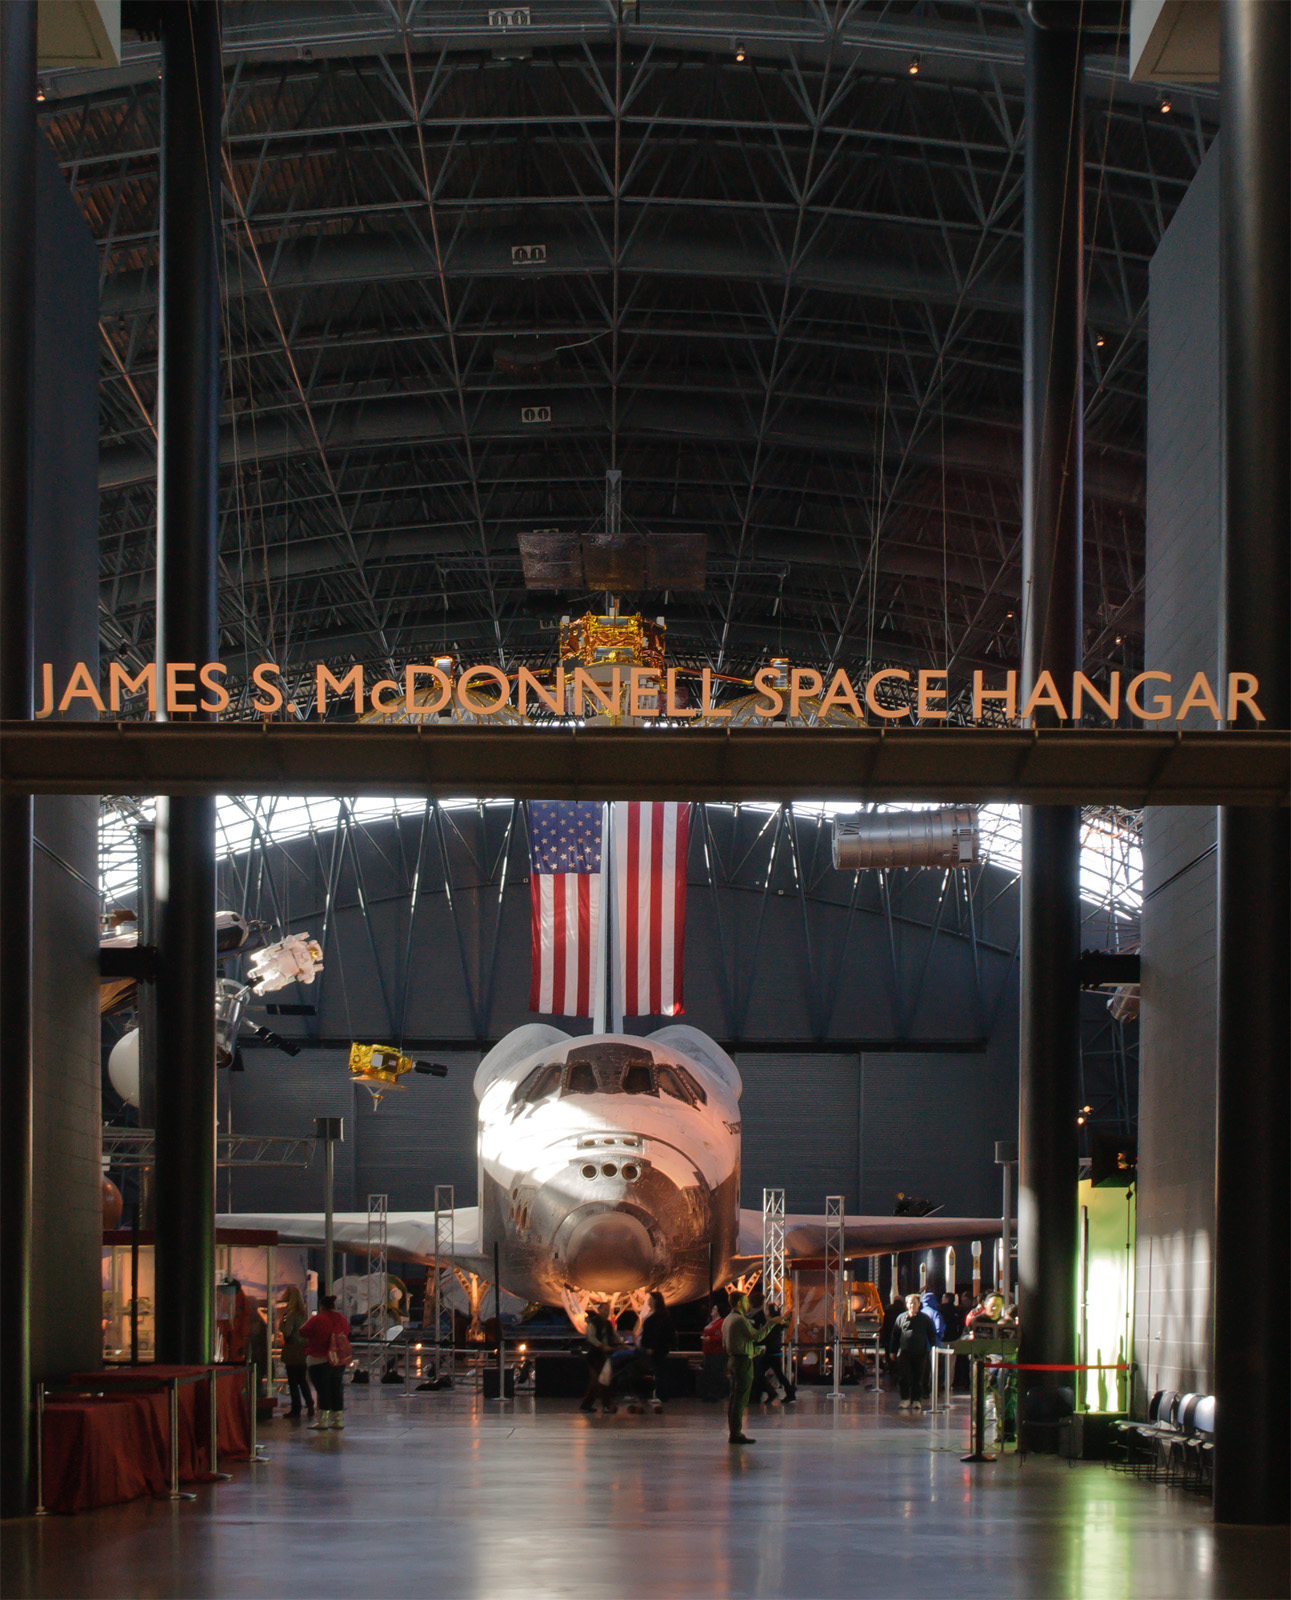 space shuttle discovery smithsonian - photo #11